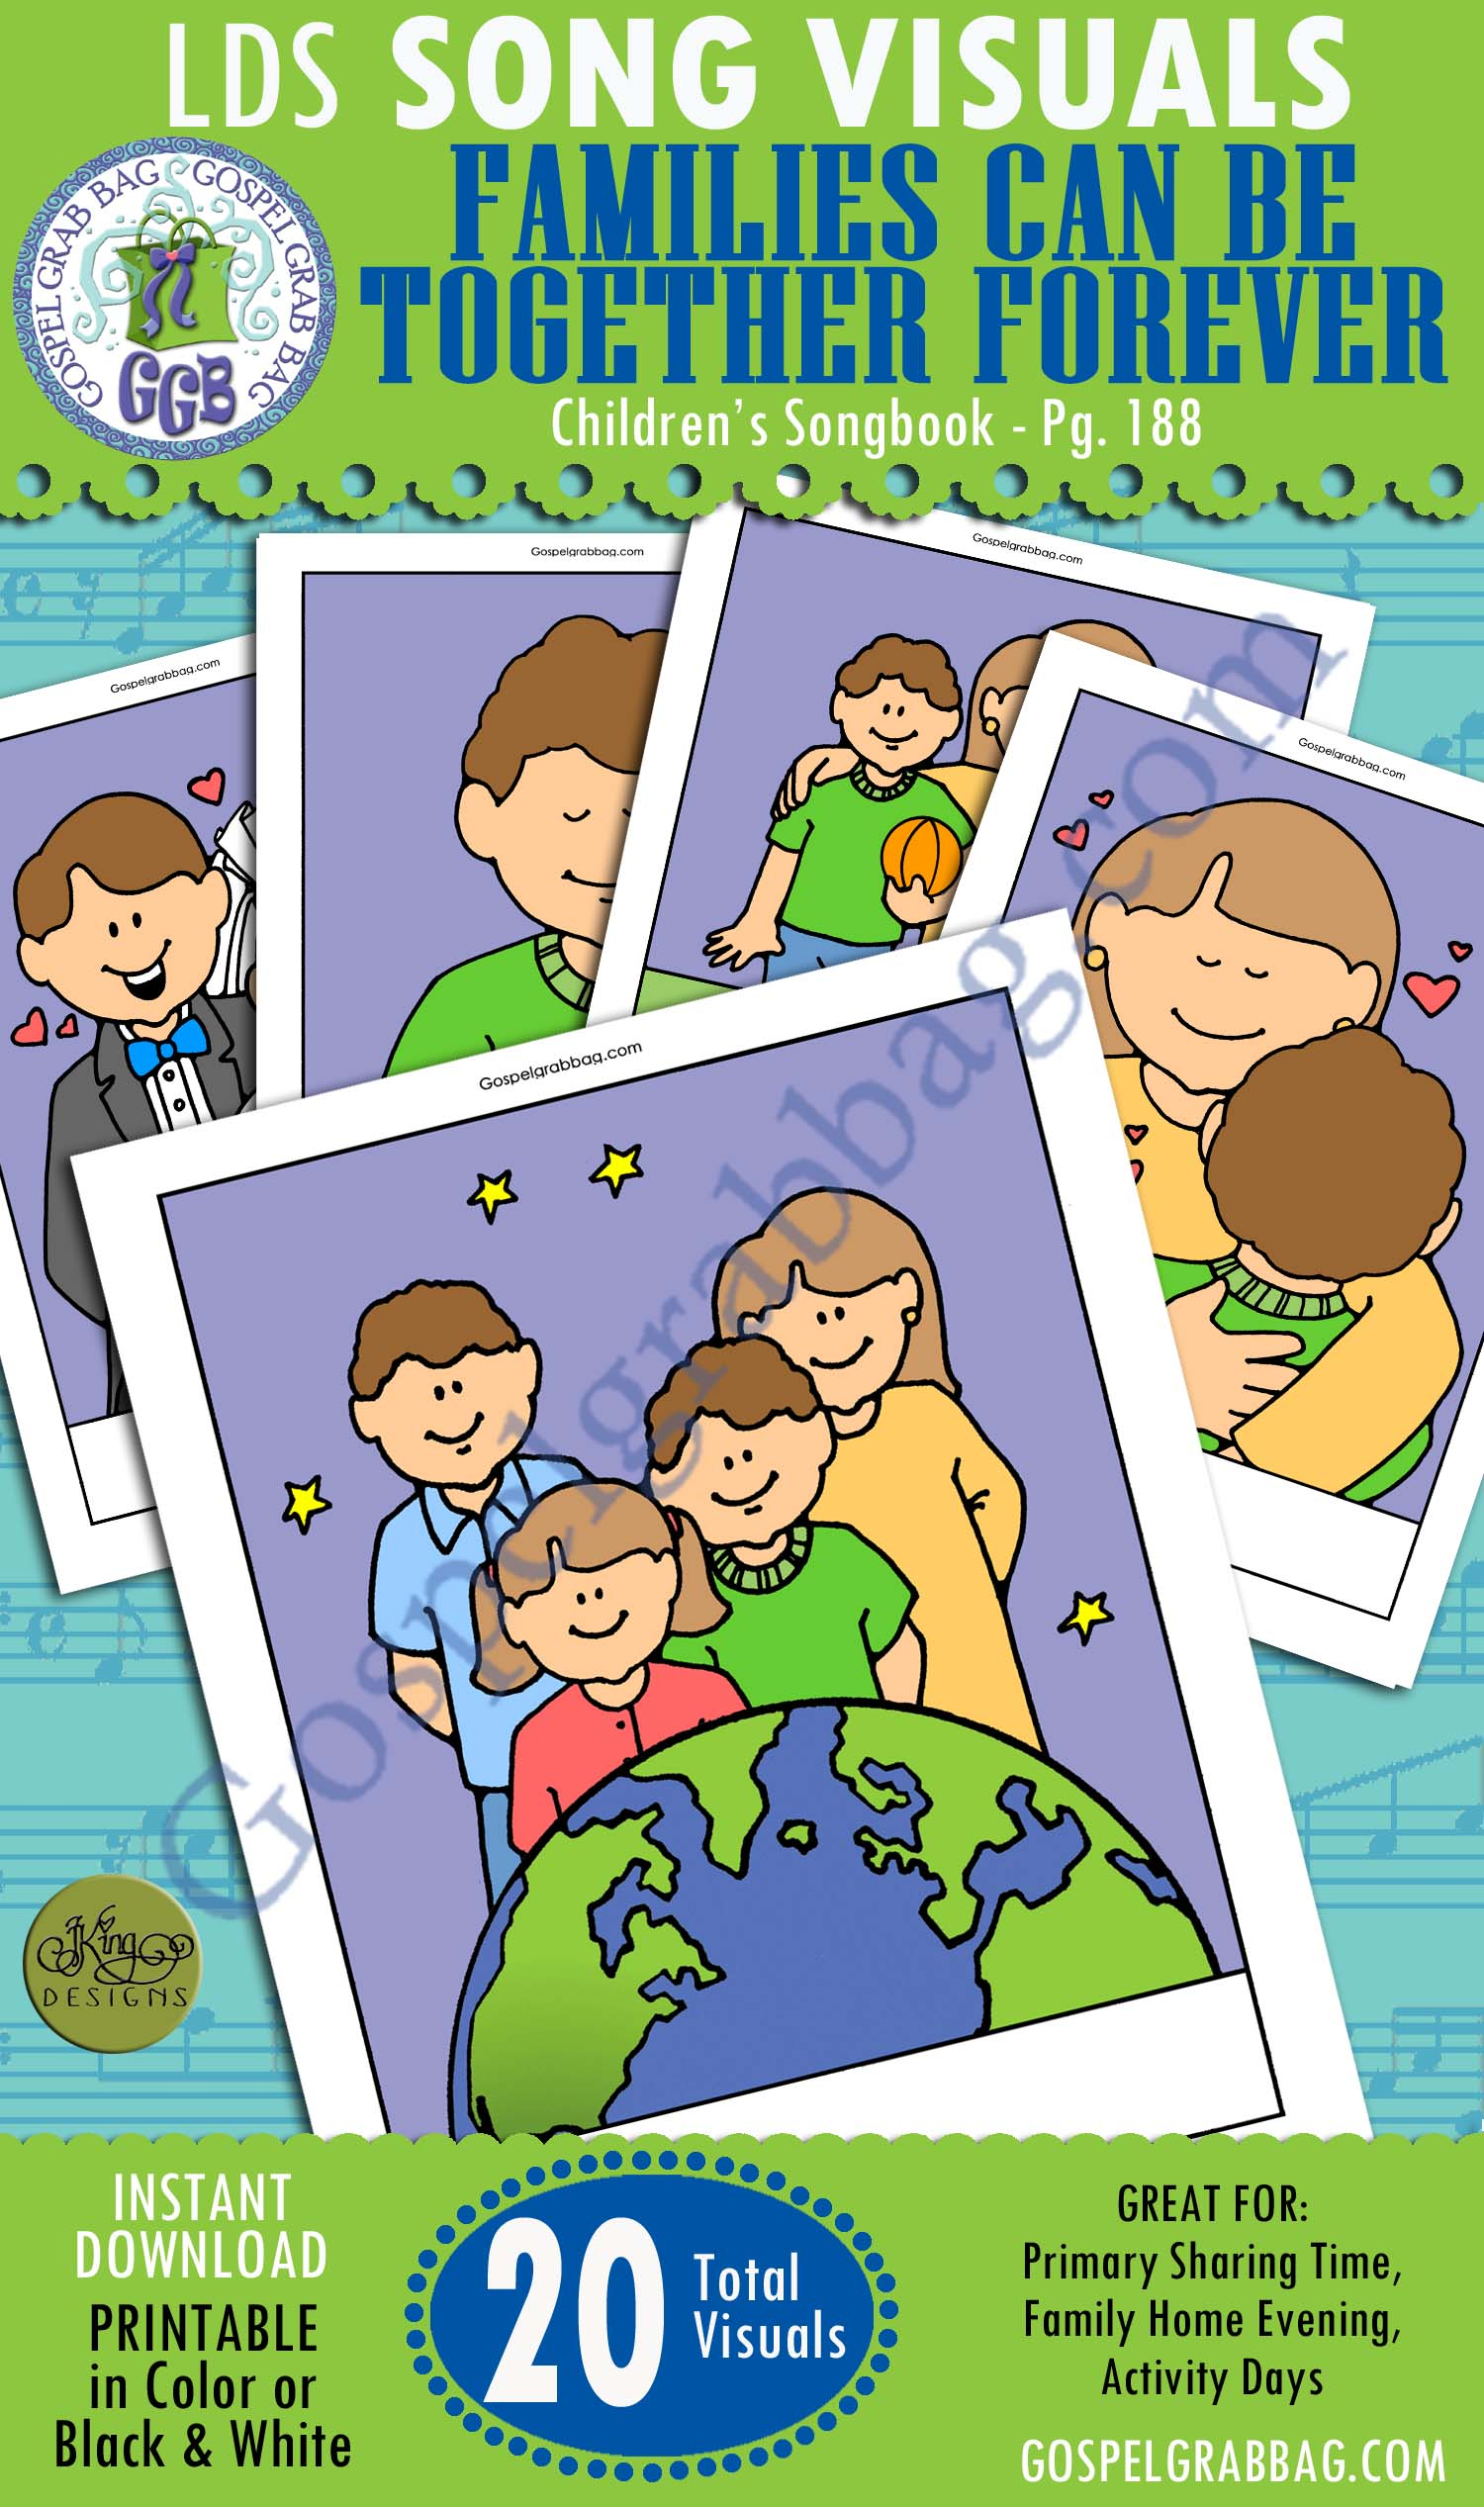 FAMILIES CAN BE TOGETHER FOREVER: Primary Song Visuals to print in color, ready-to-use – Illustrated by Jennette Guymon-King, Author, Mary H. Ross, music leaders use visuals – practice songs - Singing Time Visuals to DOWNLOAD